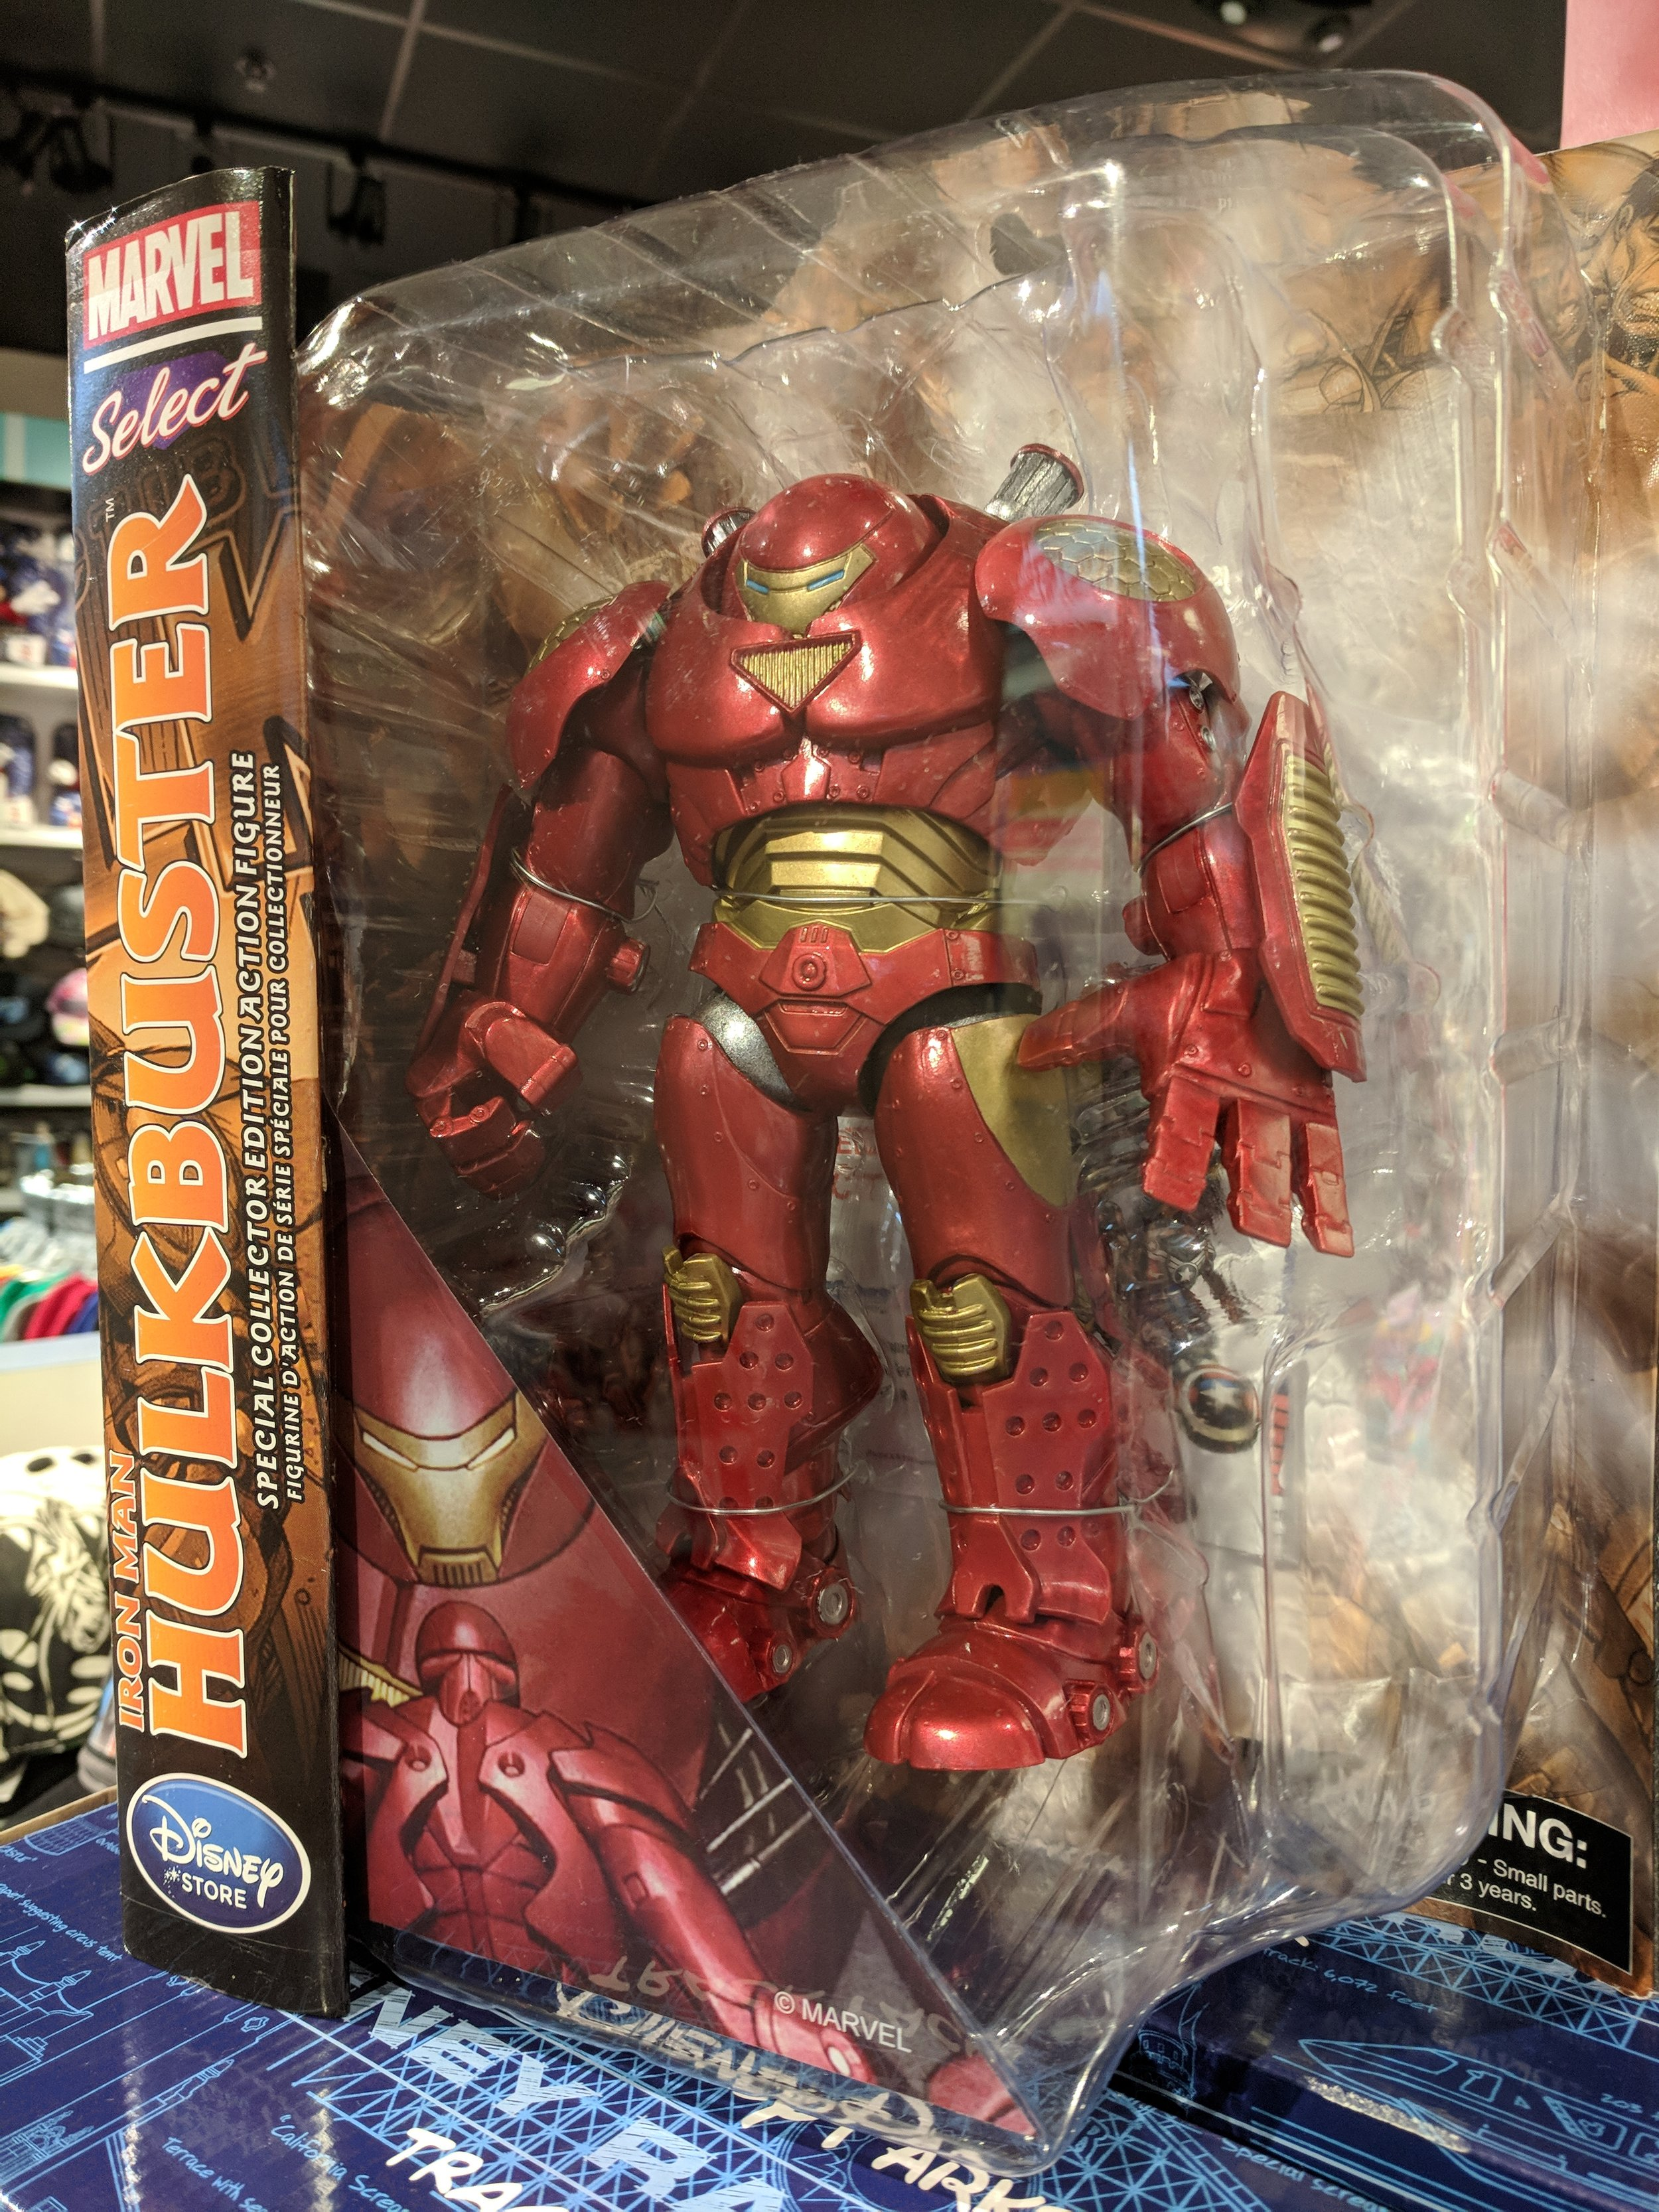 I wanted to be mad but damn that's a sweet Hulkbuster